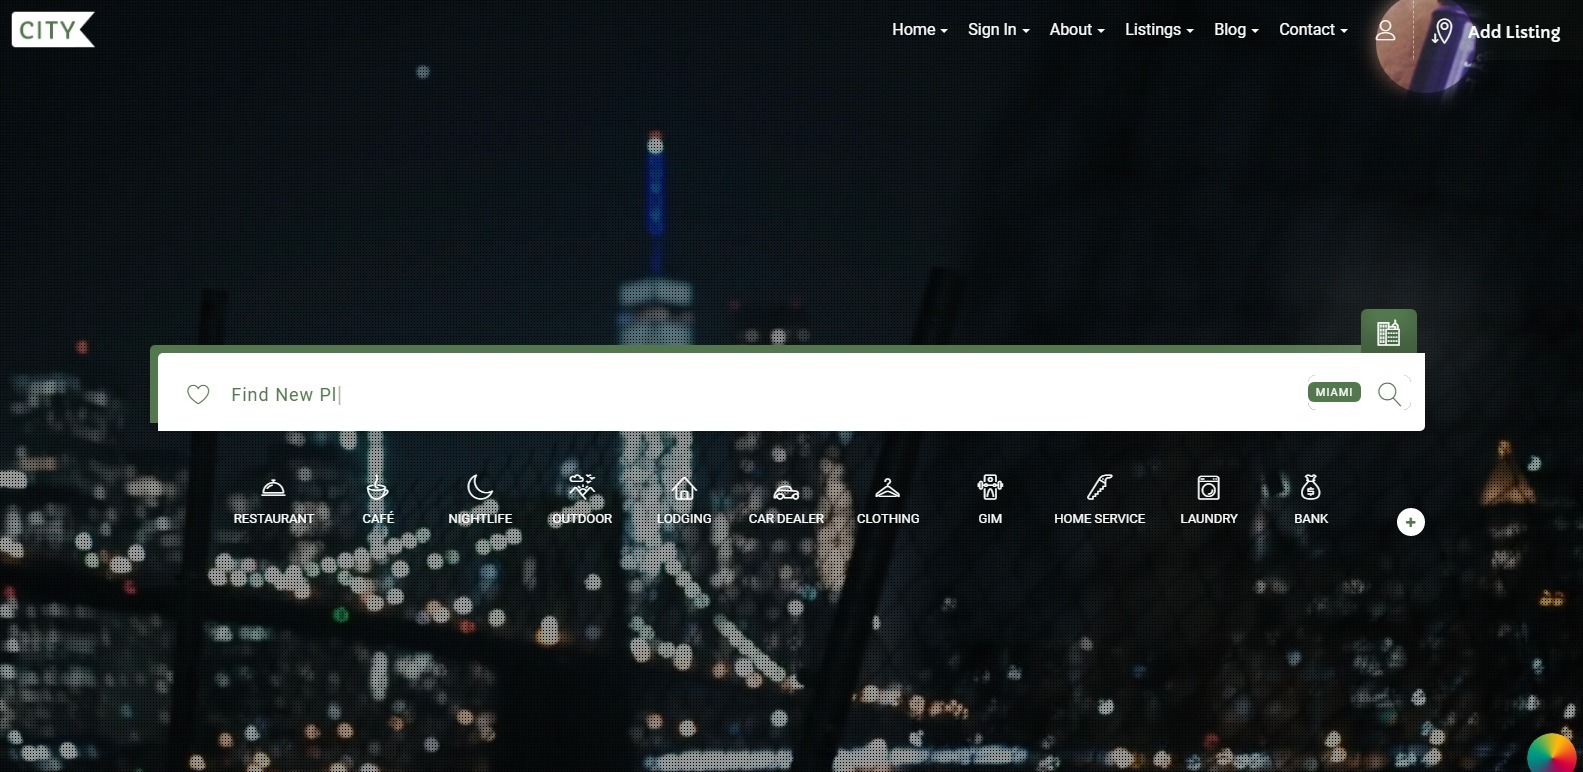 city-listing-business-website-template